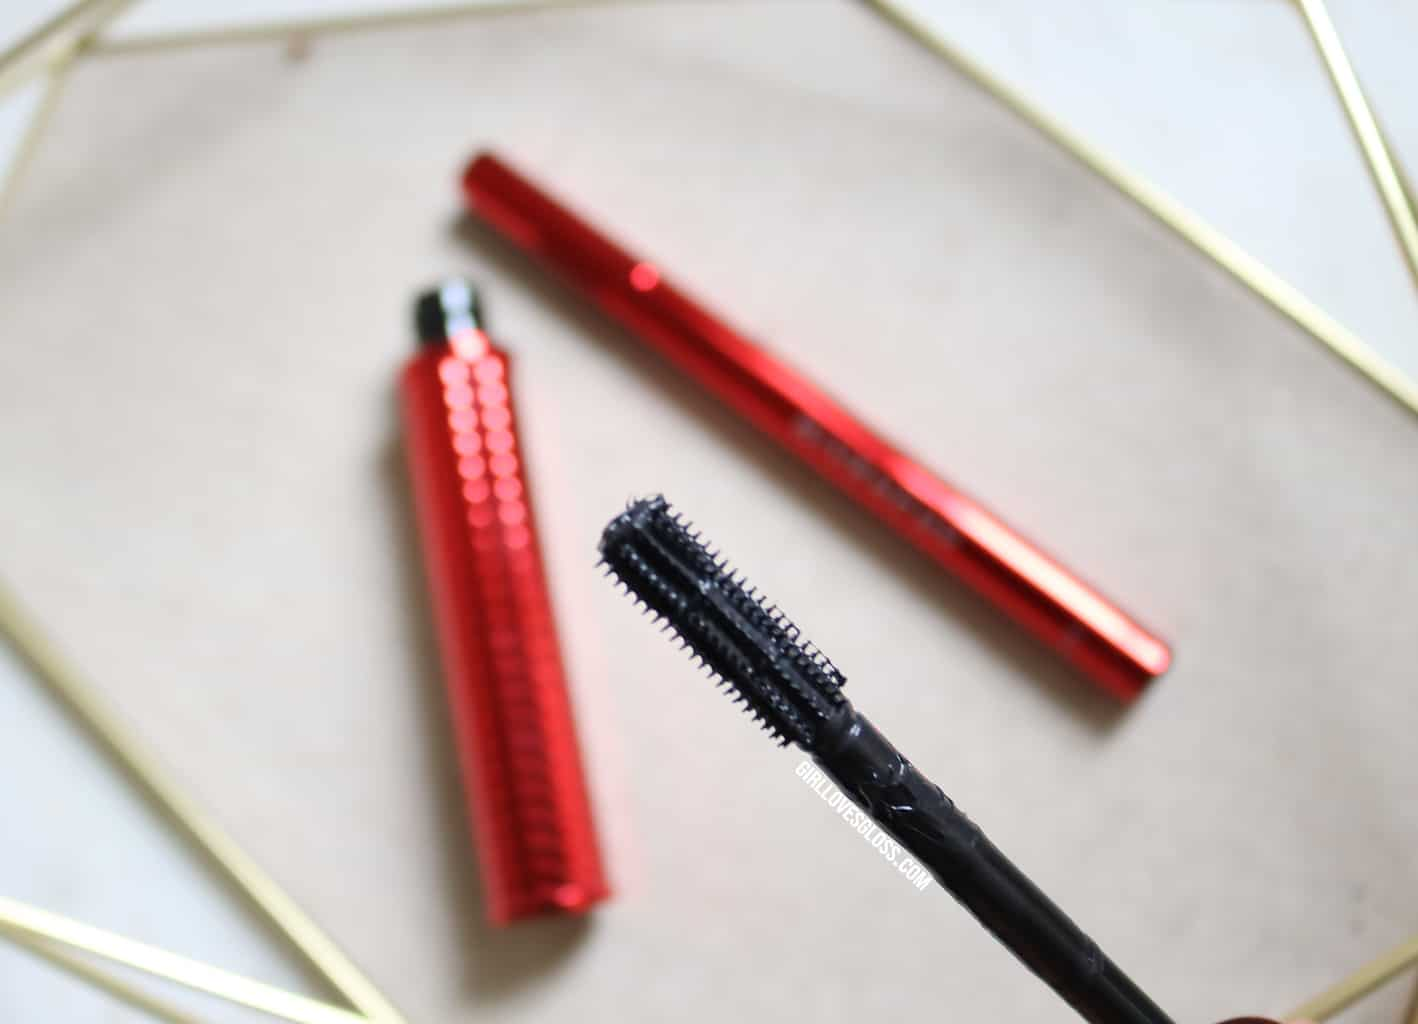 Givenchy Disturbia Liner and Mascara review and demo